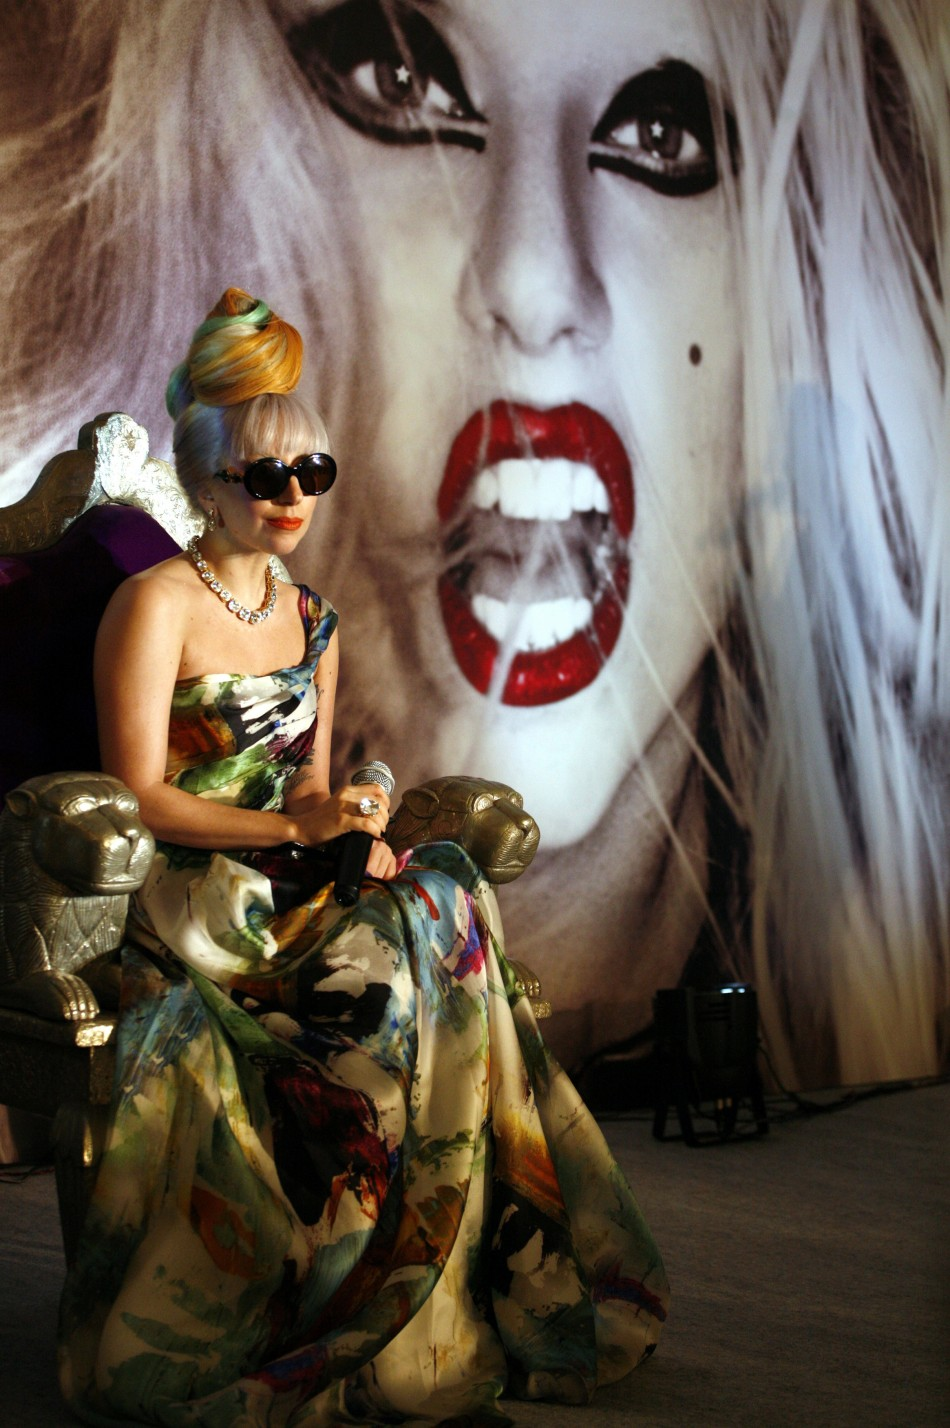 Lady Gaga attends a news conference in New Delhi